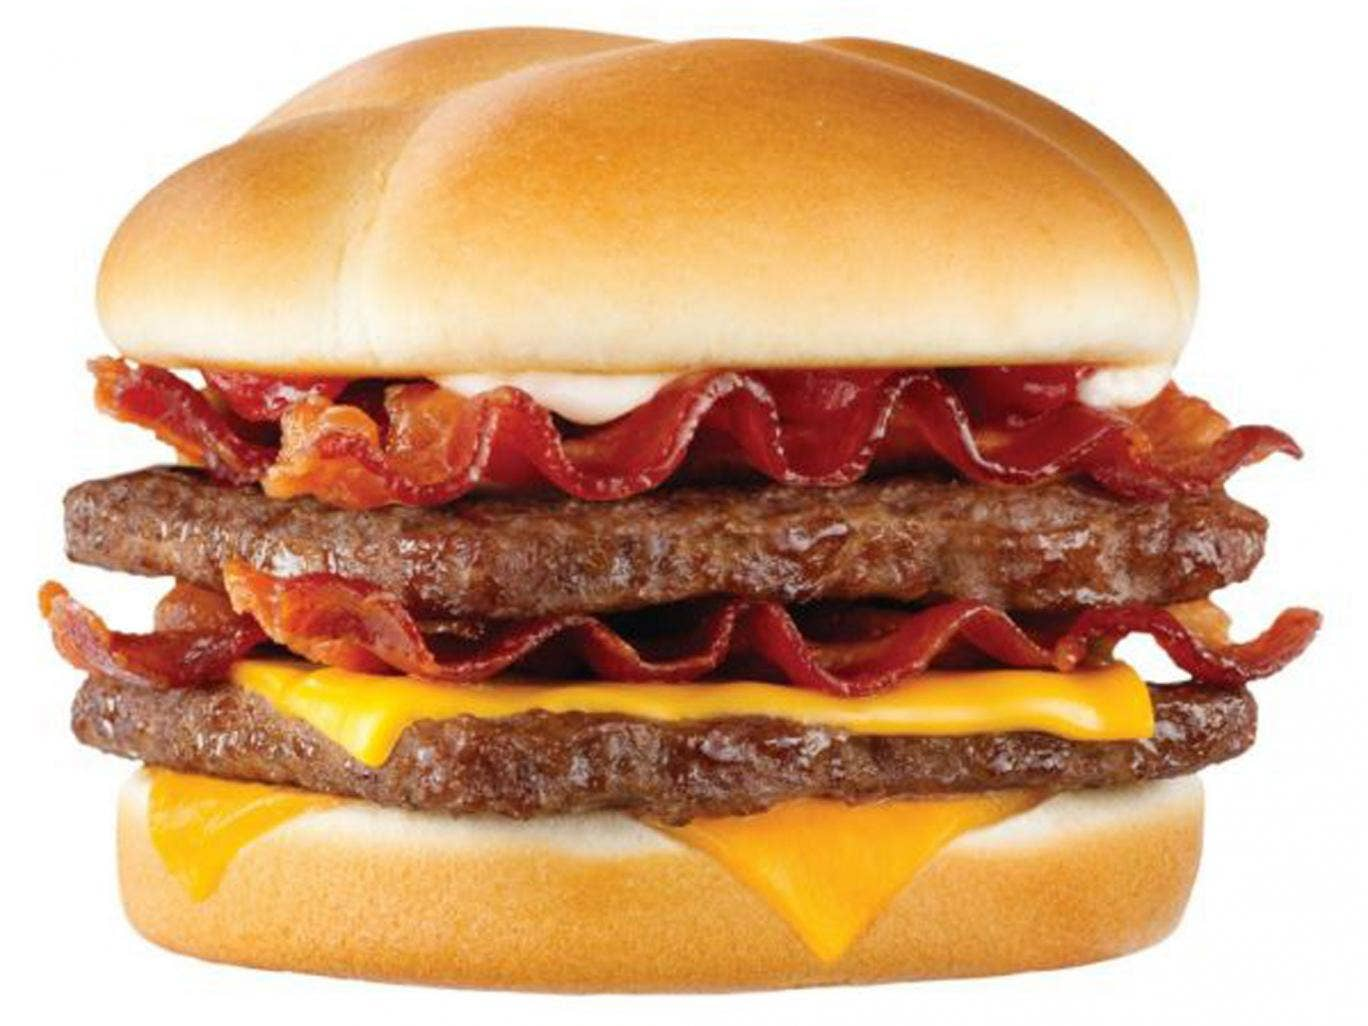 Call me a masochist, but if I'm going for a Baconator (a quarter-pound beef patty with mayo, ketchup and six [6!] strips of bacon), then it's unlikely that I'll be confusing the meal with dinner at the table of the Marchioness of Marchmain